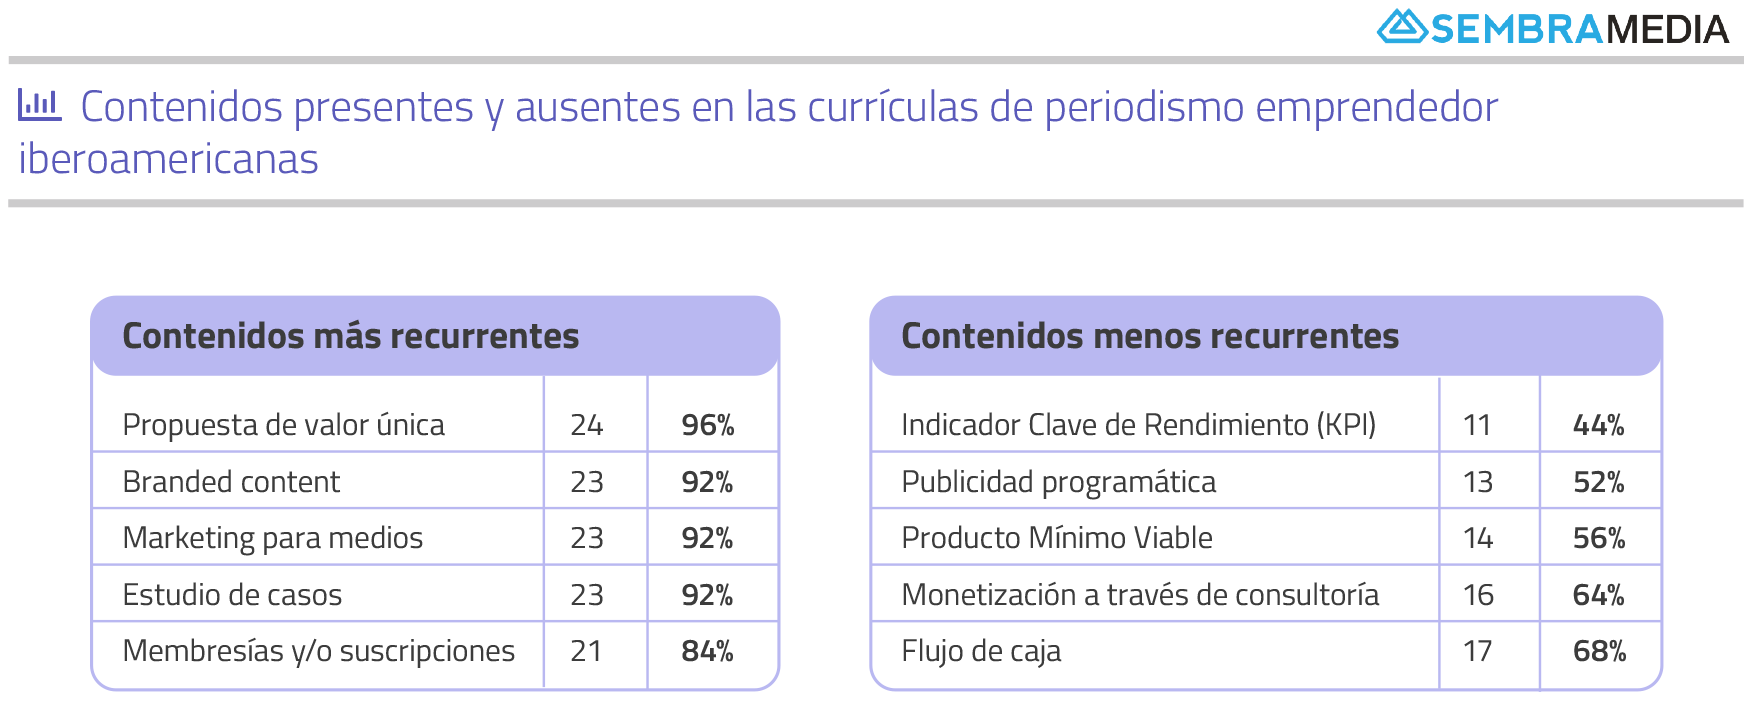 //profesores.sembramedia.org/wp-content/uploads/2018/12/graficos-5-1.png